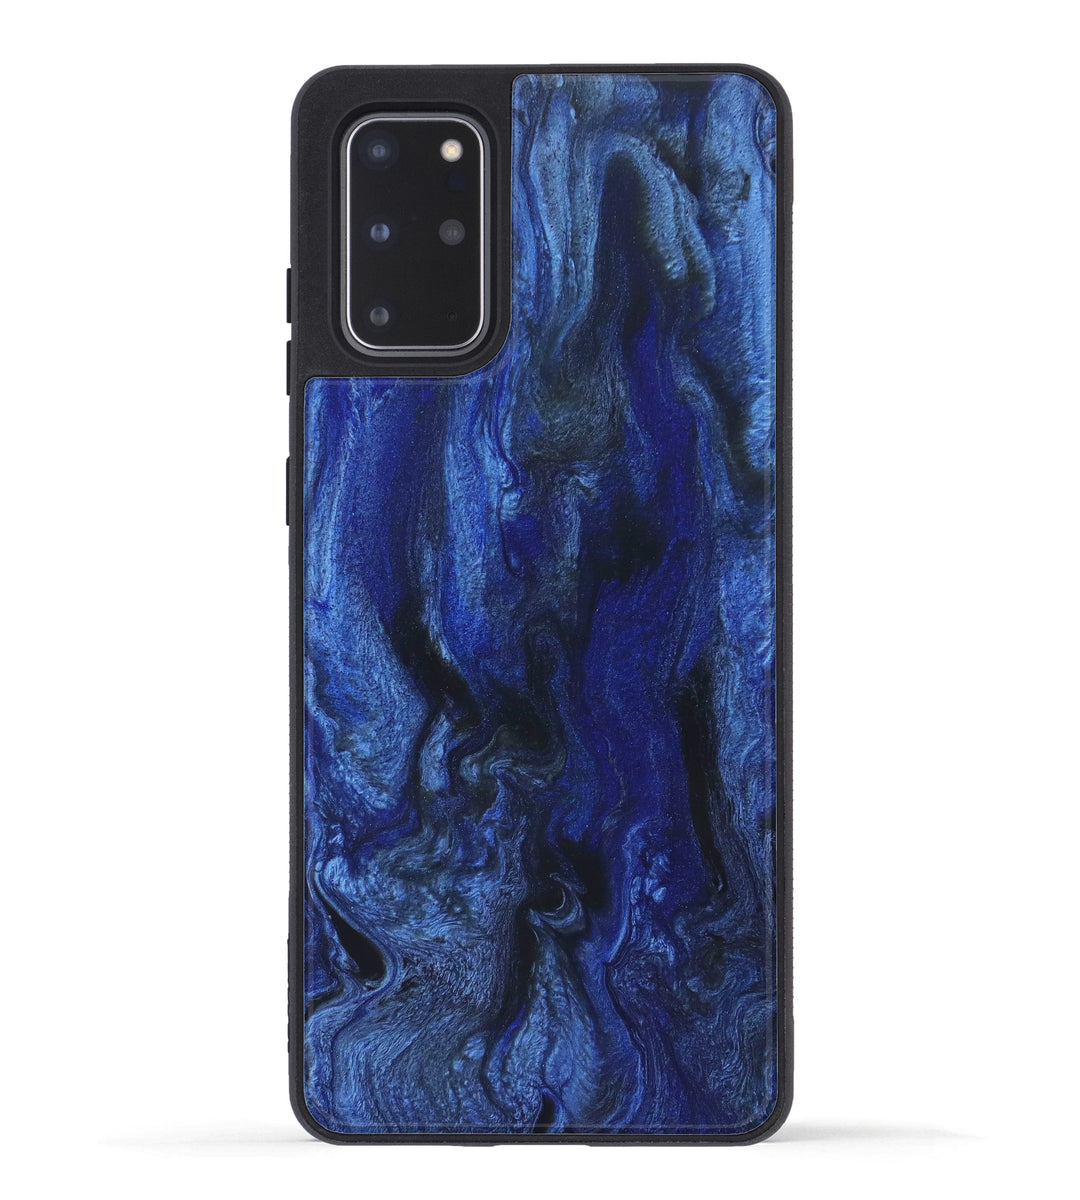 Galaxy S20 Plus ResinArt Phone Case - Darnell (Dark Blue, 347602)